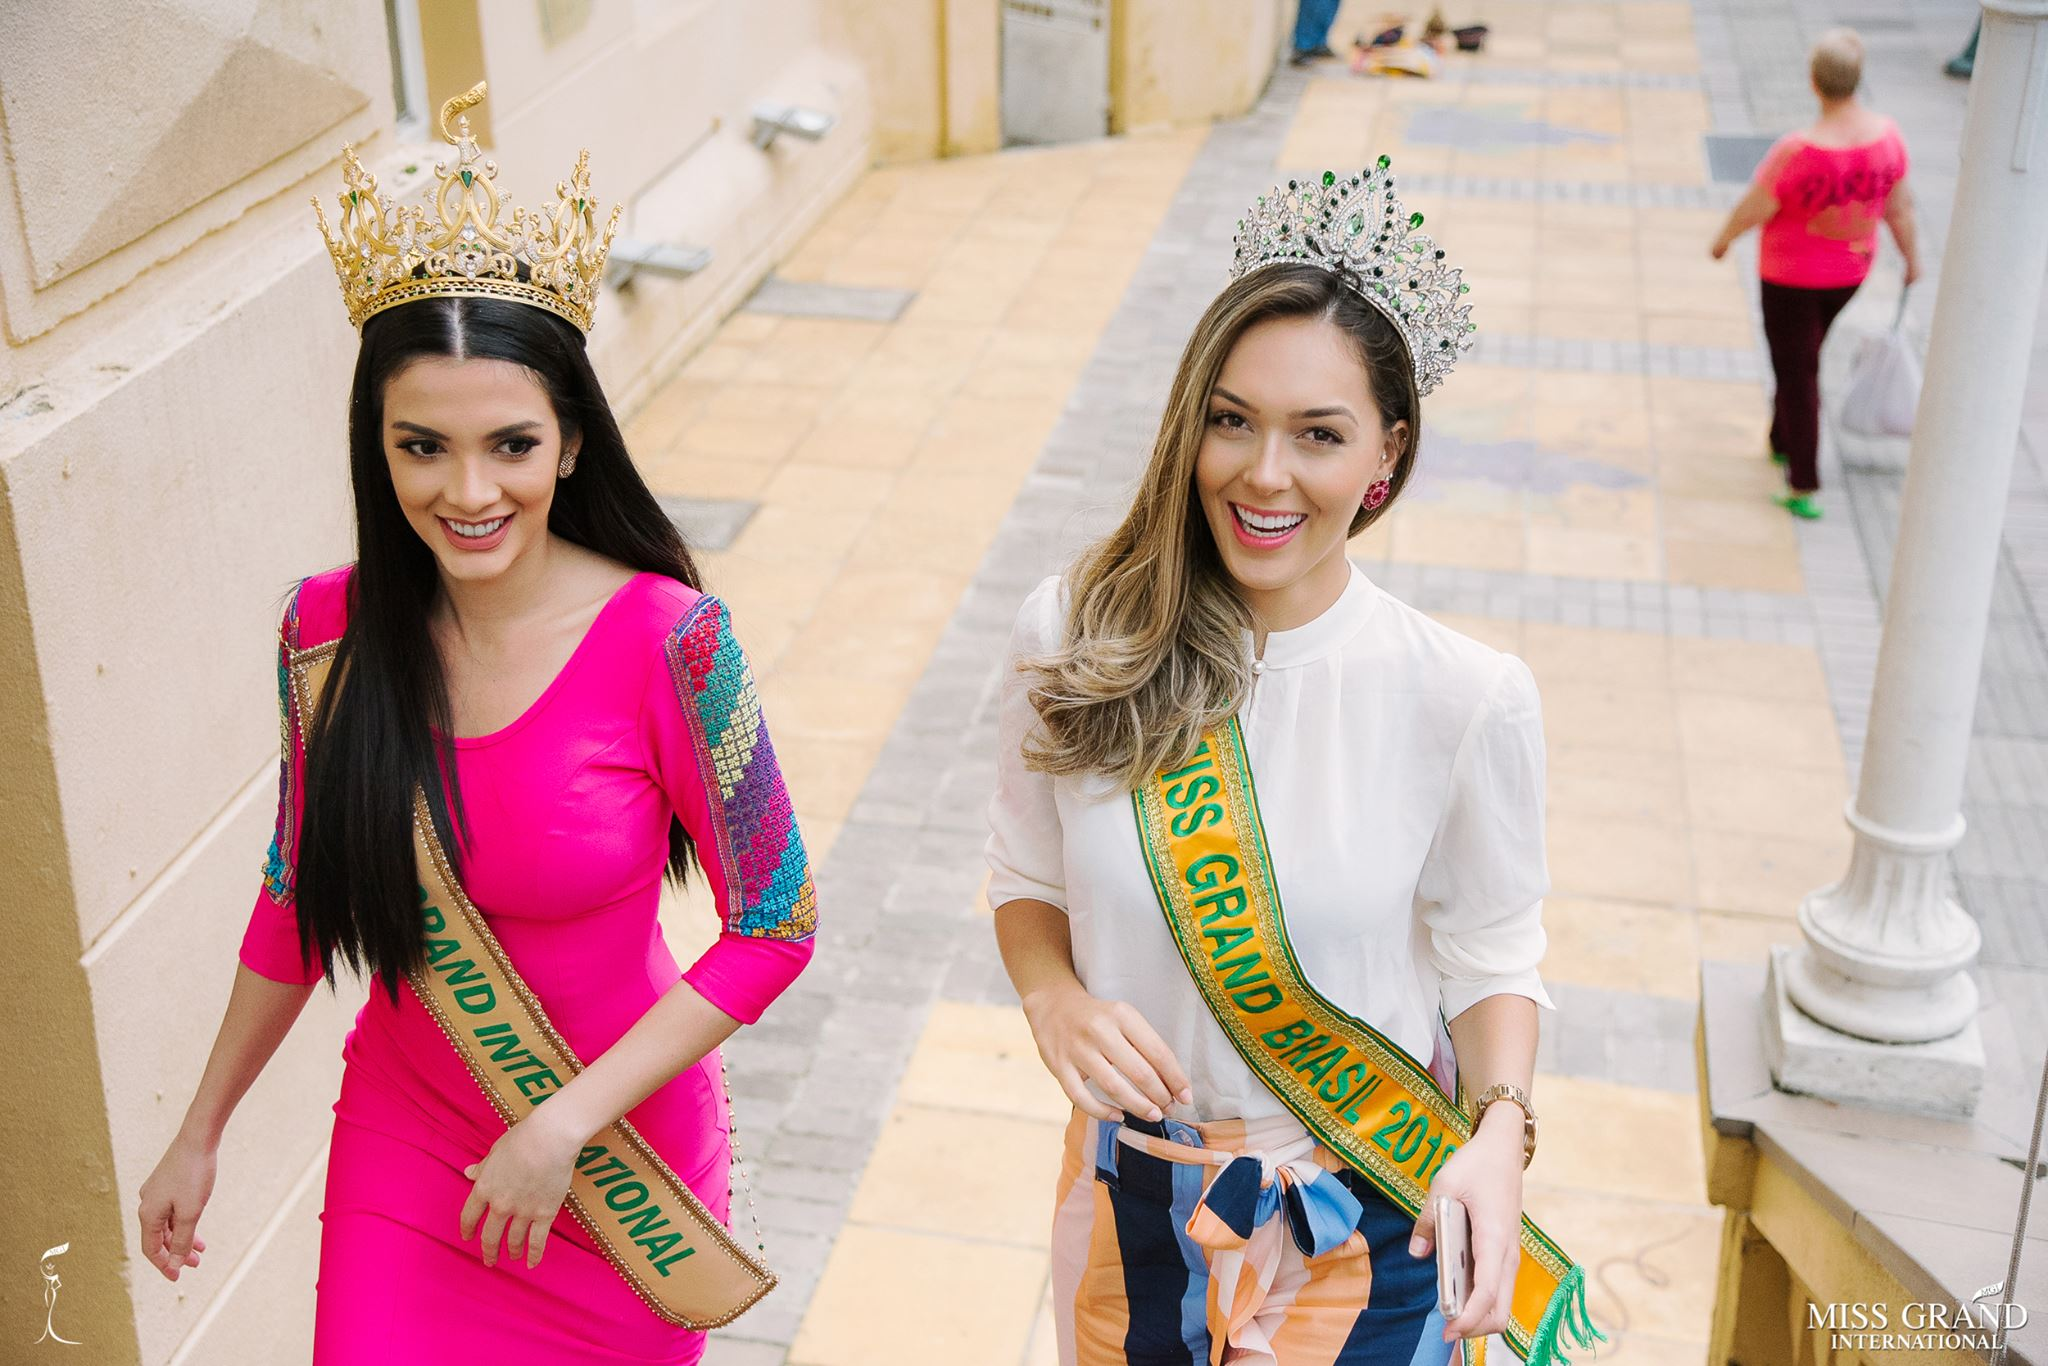 miss grand international 2018 visitando brasil para assistir a final de miss grand brasil 2019. 2gai7xkd